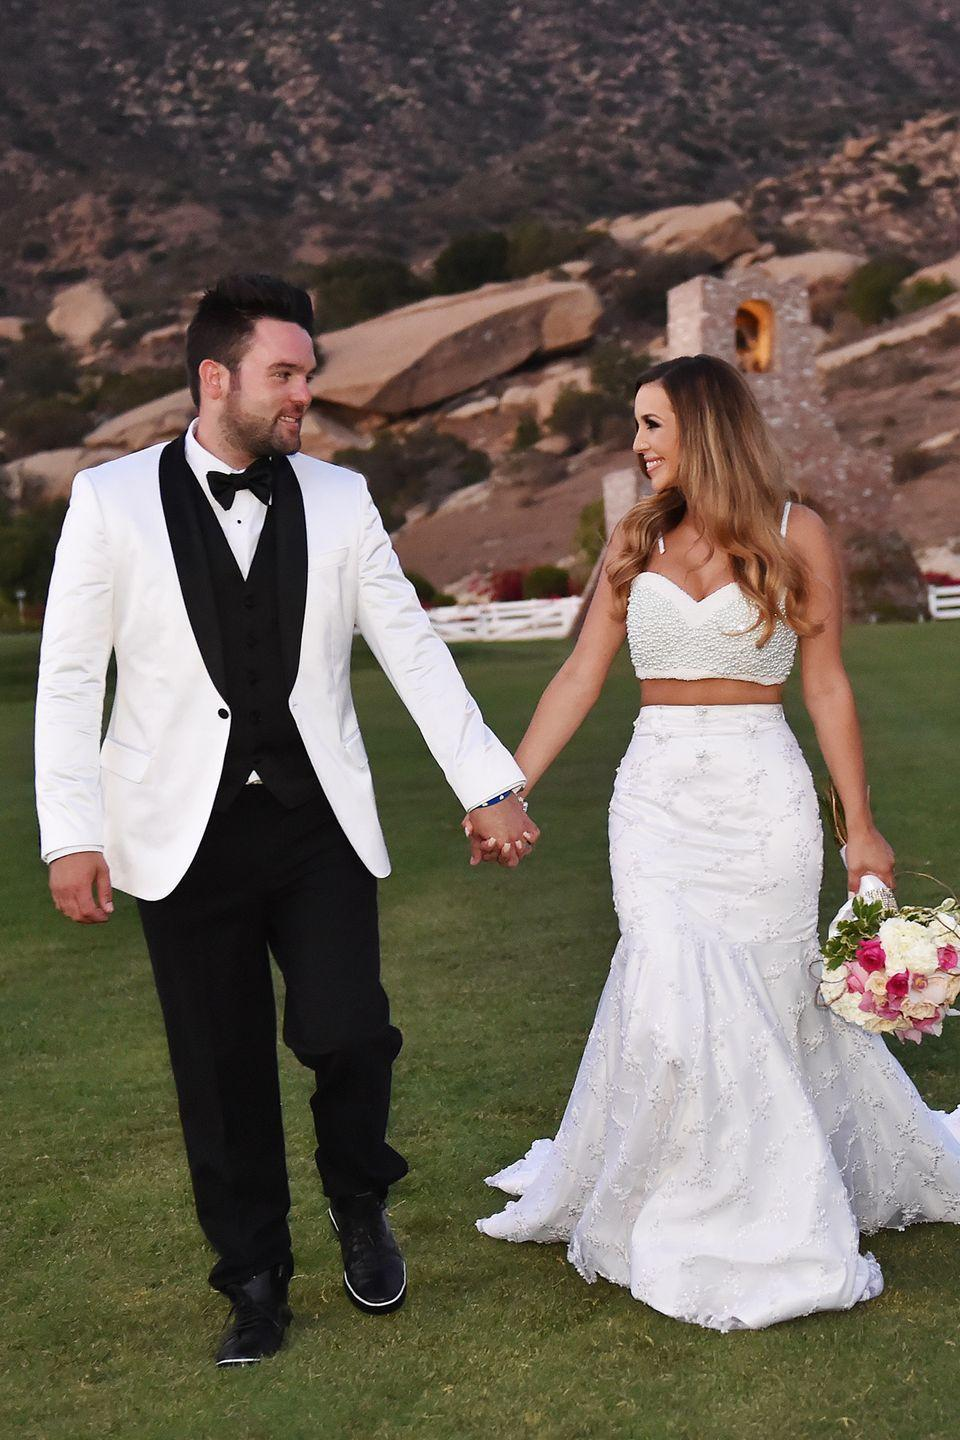 "<p>The model and star of <em>Vanderpump Rules </em>on Bravo designed her own dress for her wedding to <span class=""redactor-unlink"">Michael Shay</span> at the height of the crop top fad. Some thought her dress was too trendy and would appear outdated in only a few of years.</p>"